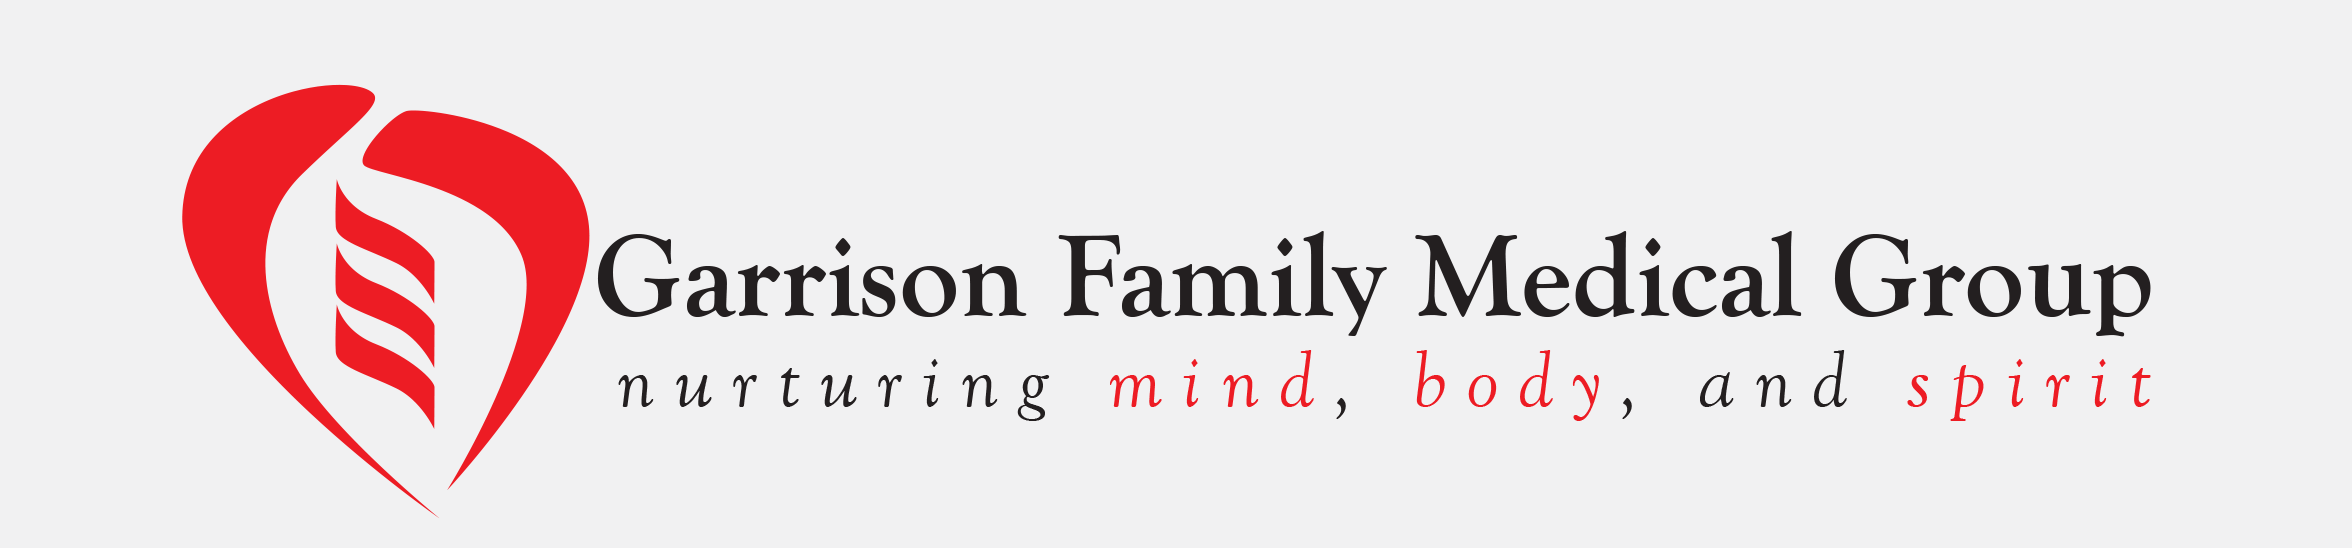 Garrison Family Medical Group